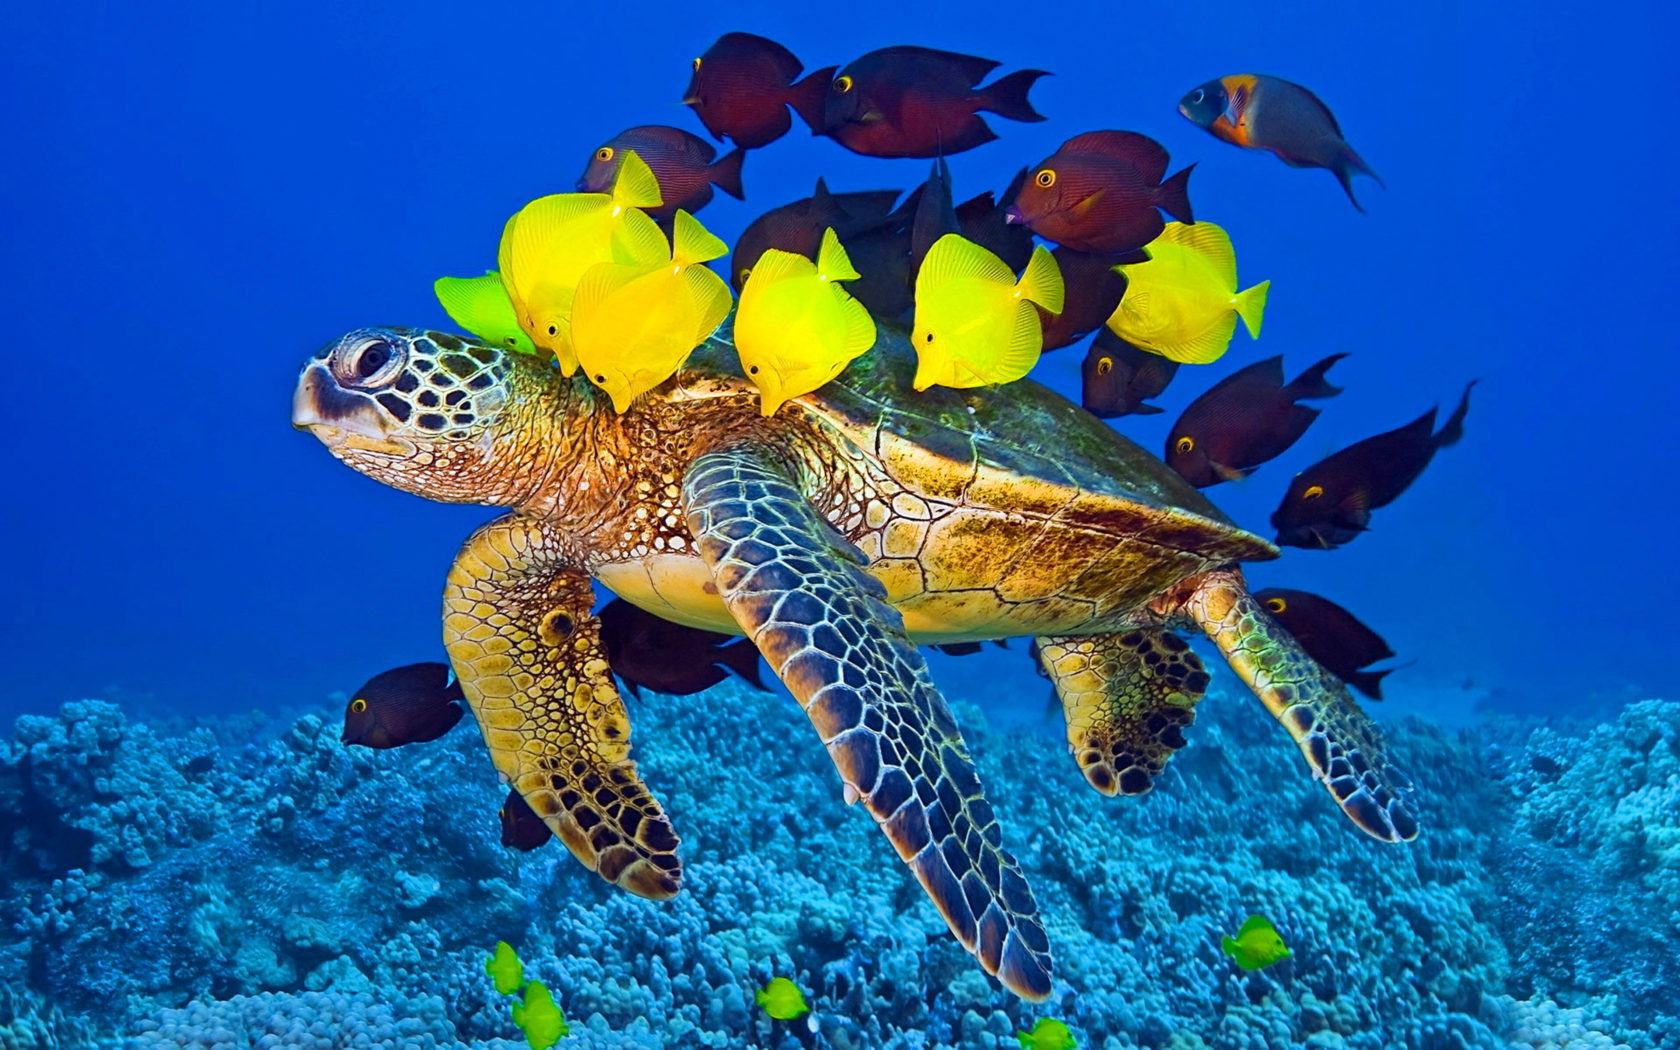 Wallpaper Fish Iphone Sea Turtle And Fish Wallpaper Hd For Laptop Mobile Phone